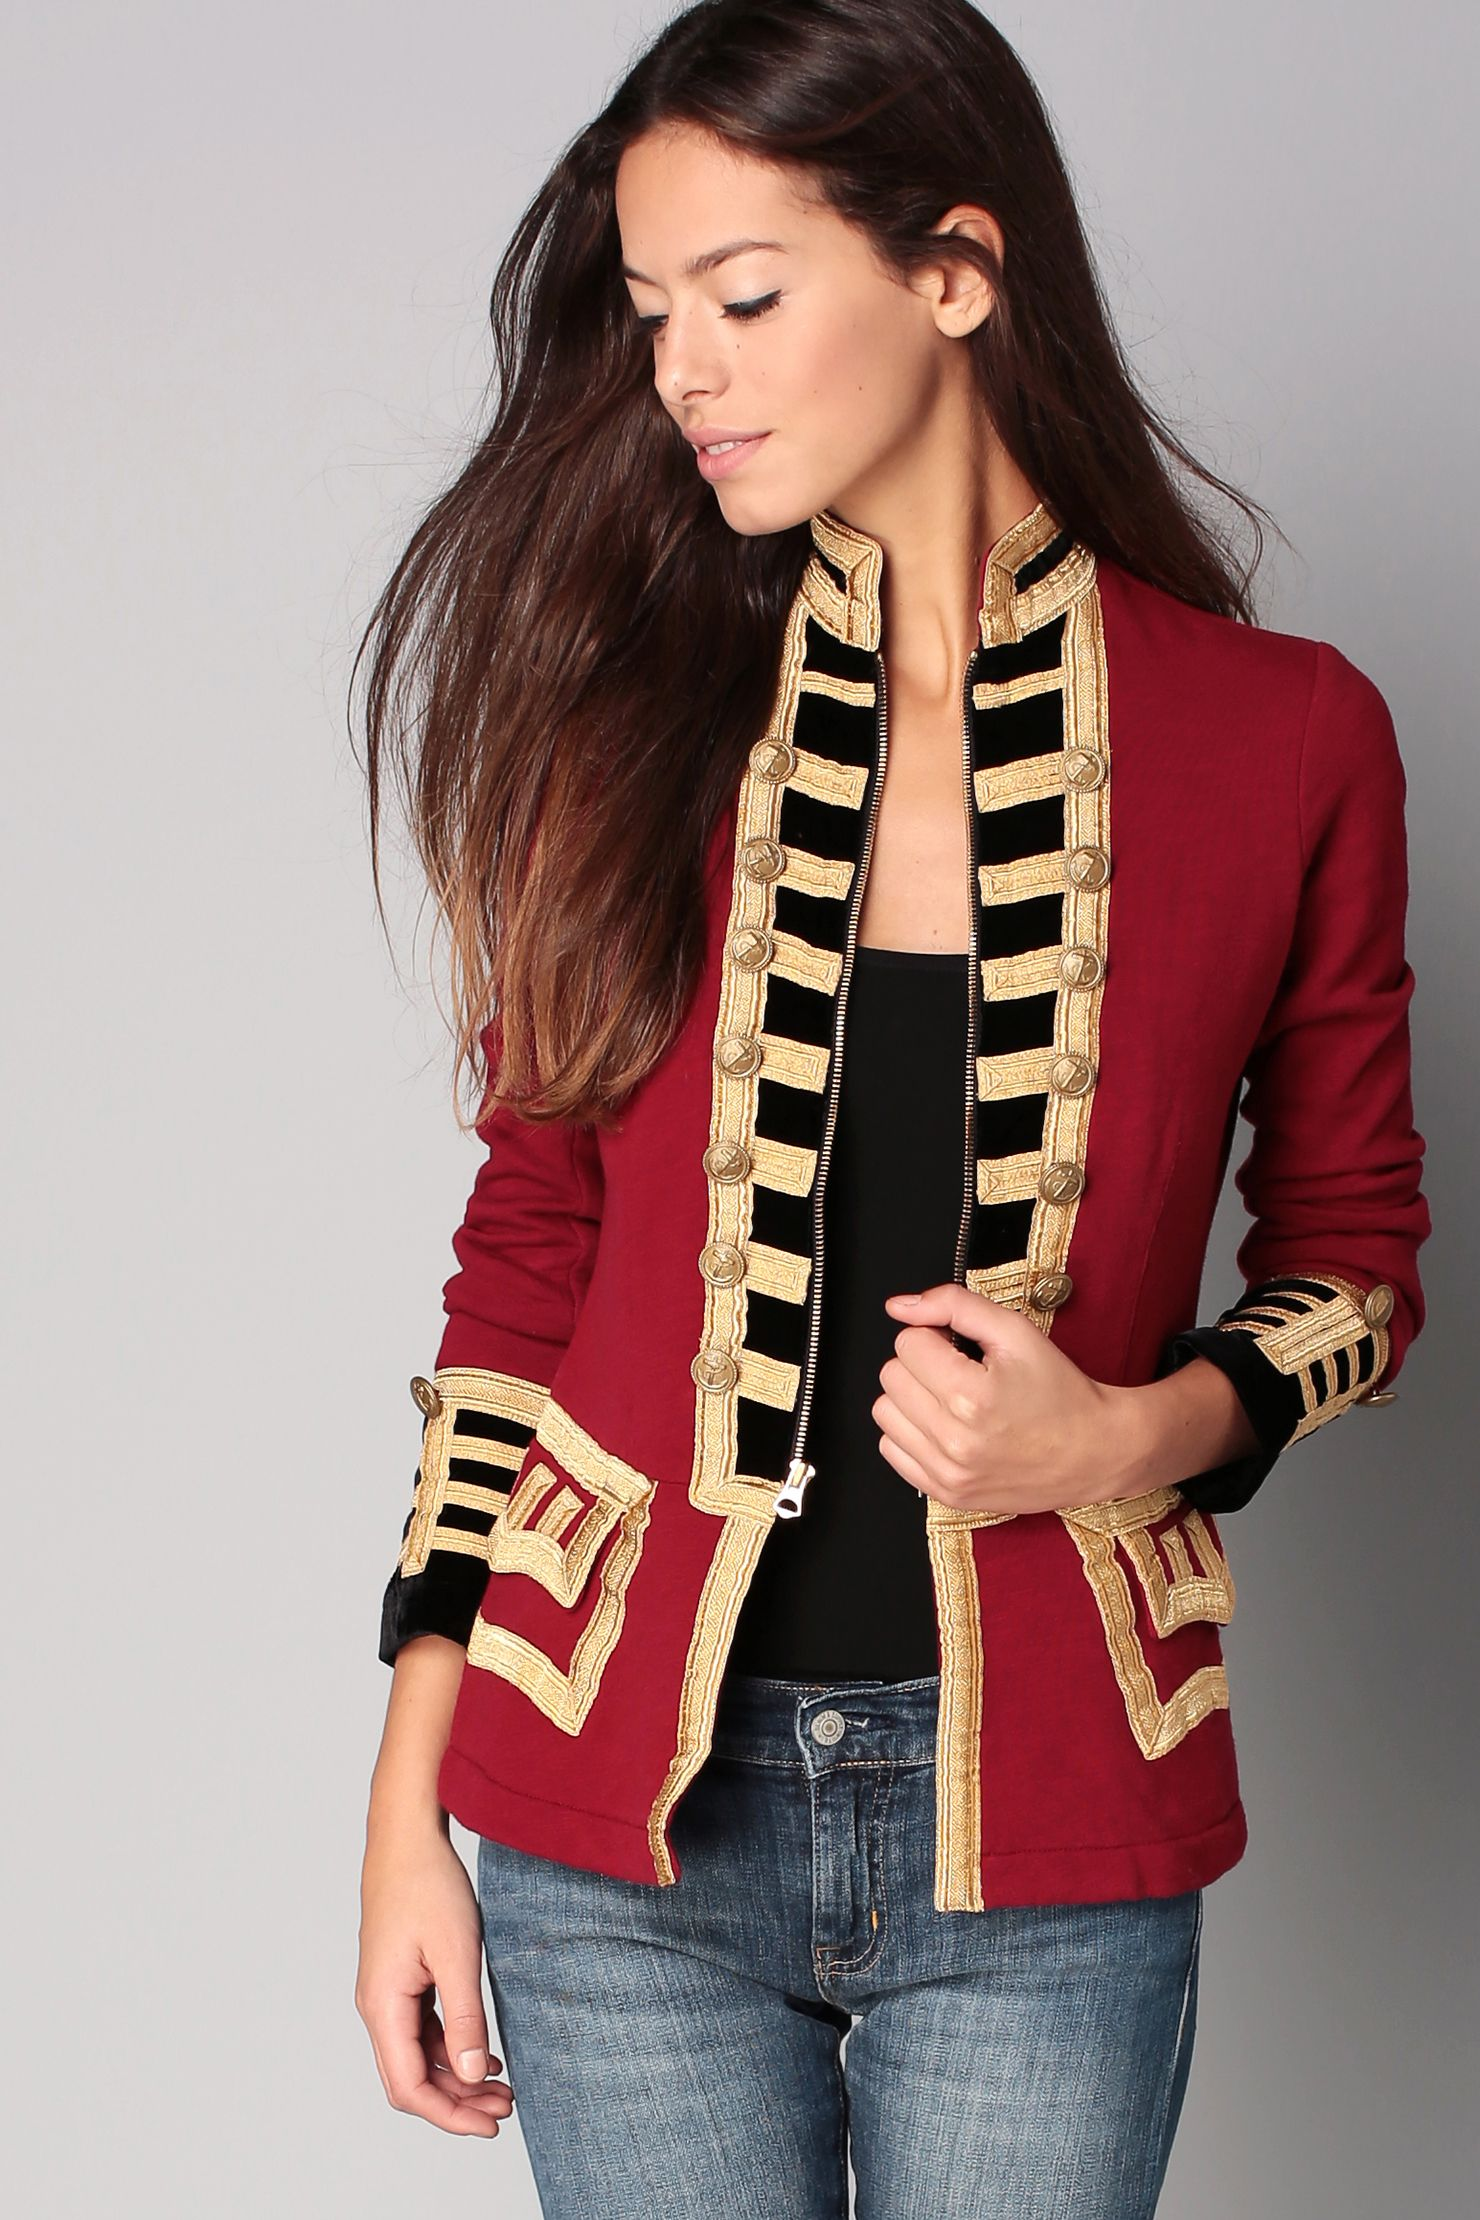 Veste rouge et dorée Officier Denim and Supply by Ralph Lauren sur  MonShowroom.com 06fdf46b031f